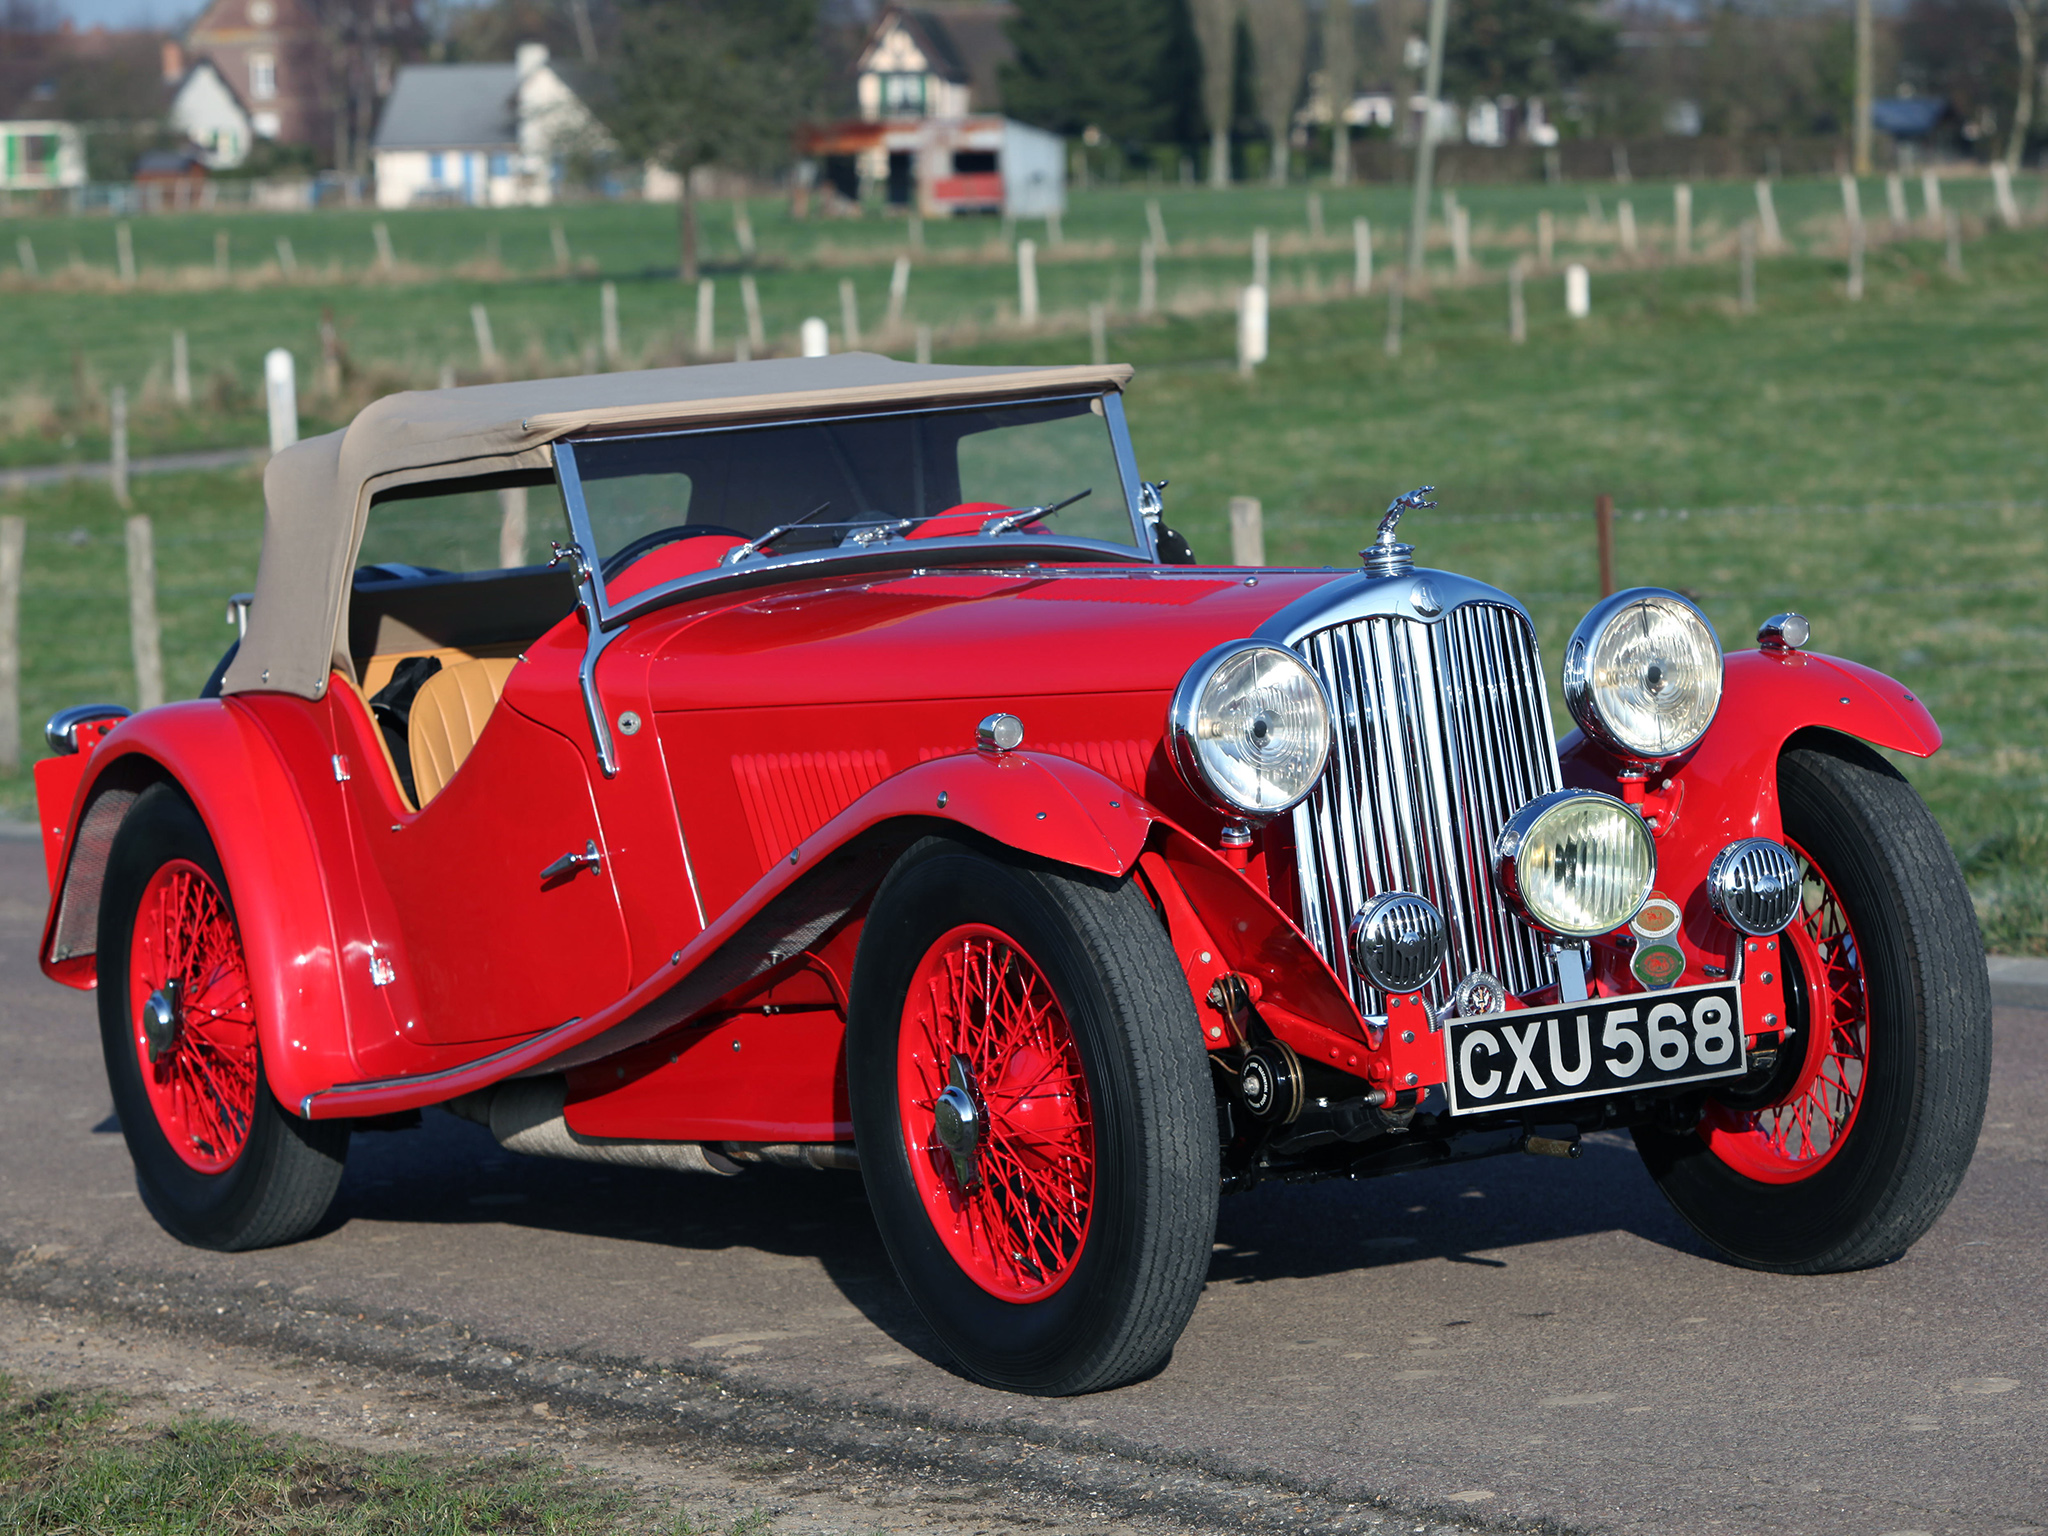 AC-six-16-80-competition-6-drive-my-2014-10 Interesting Tvr Griffith 500 Ignition Timing Cars Trend